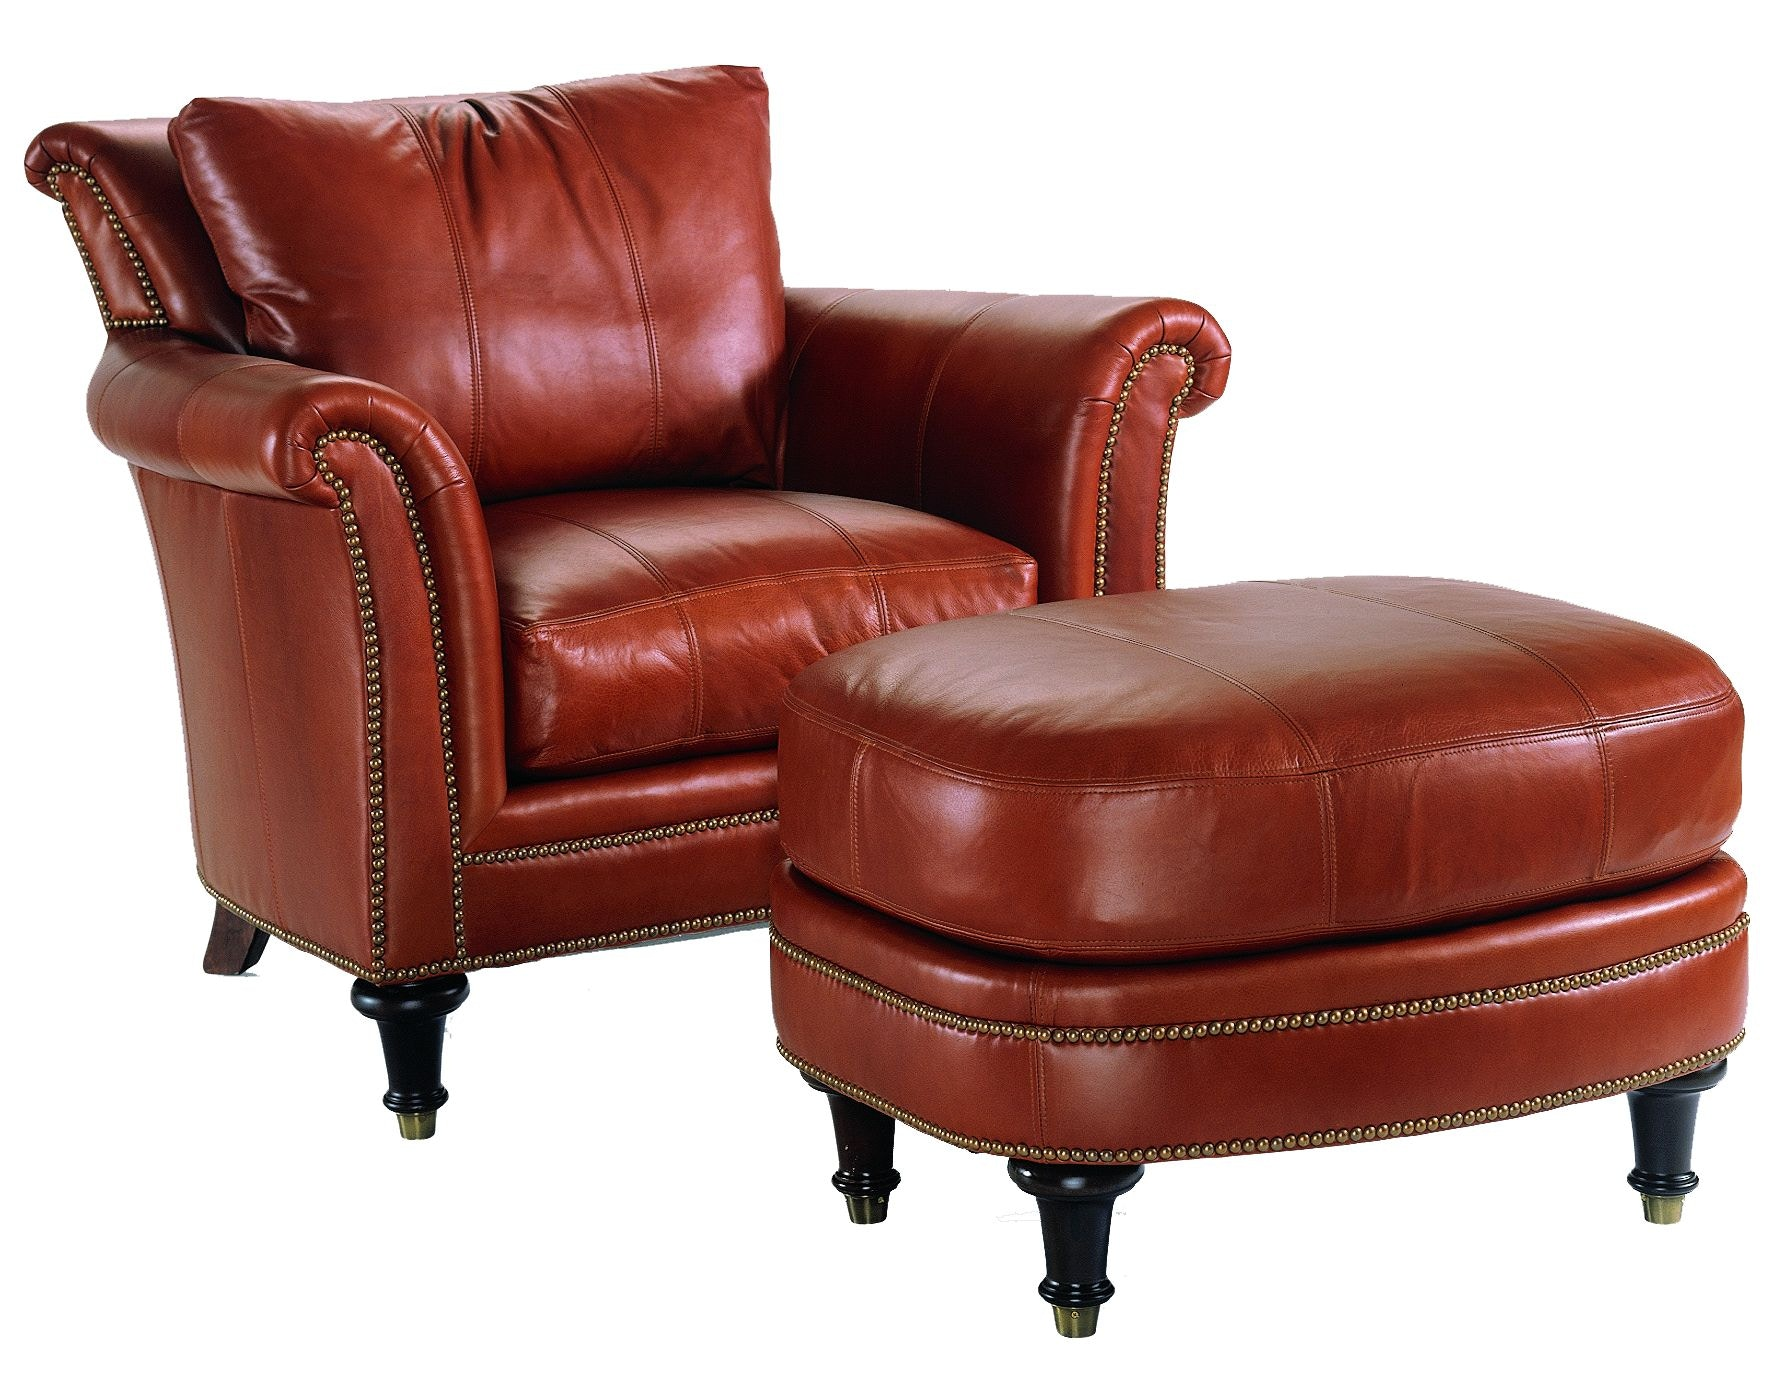 Charming Available In Choice Of Fabric Or Leather And Customization Is Possible.  Surrey Chair (Leather) L 9927 1 Chaddock